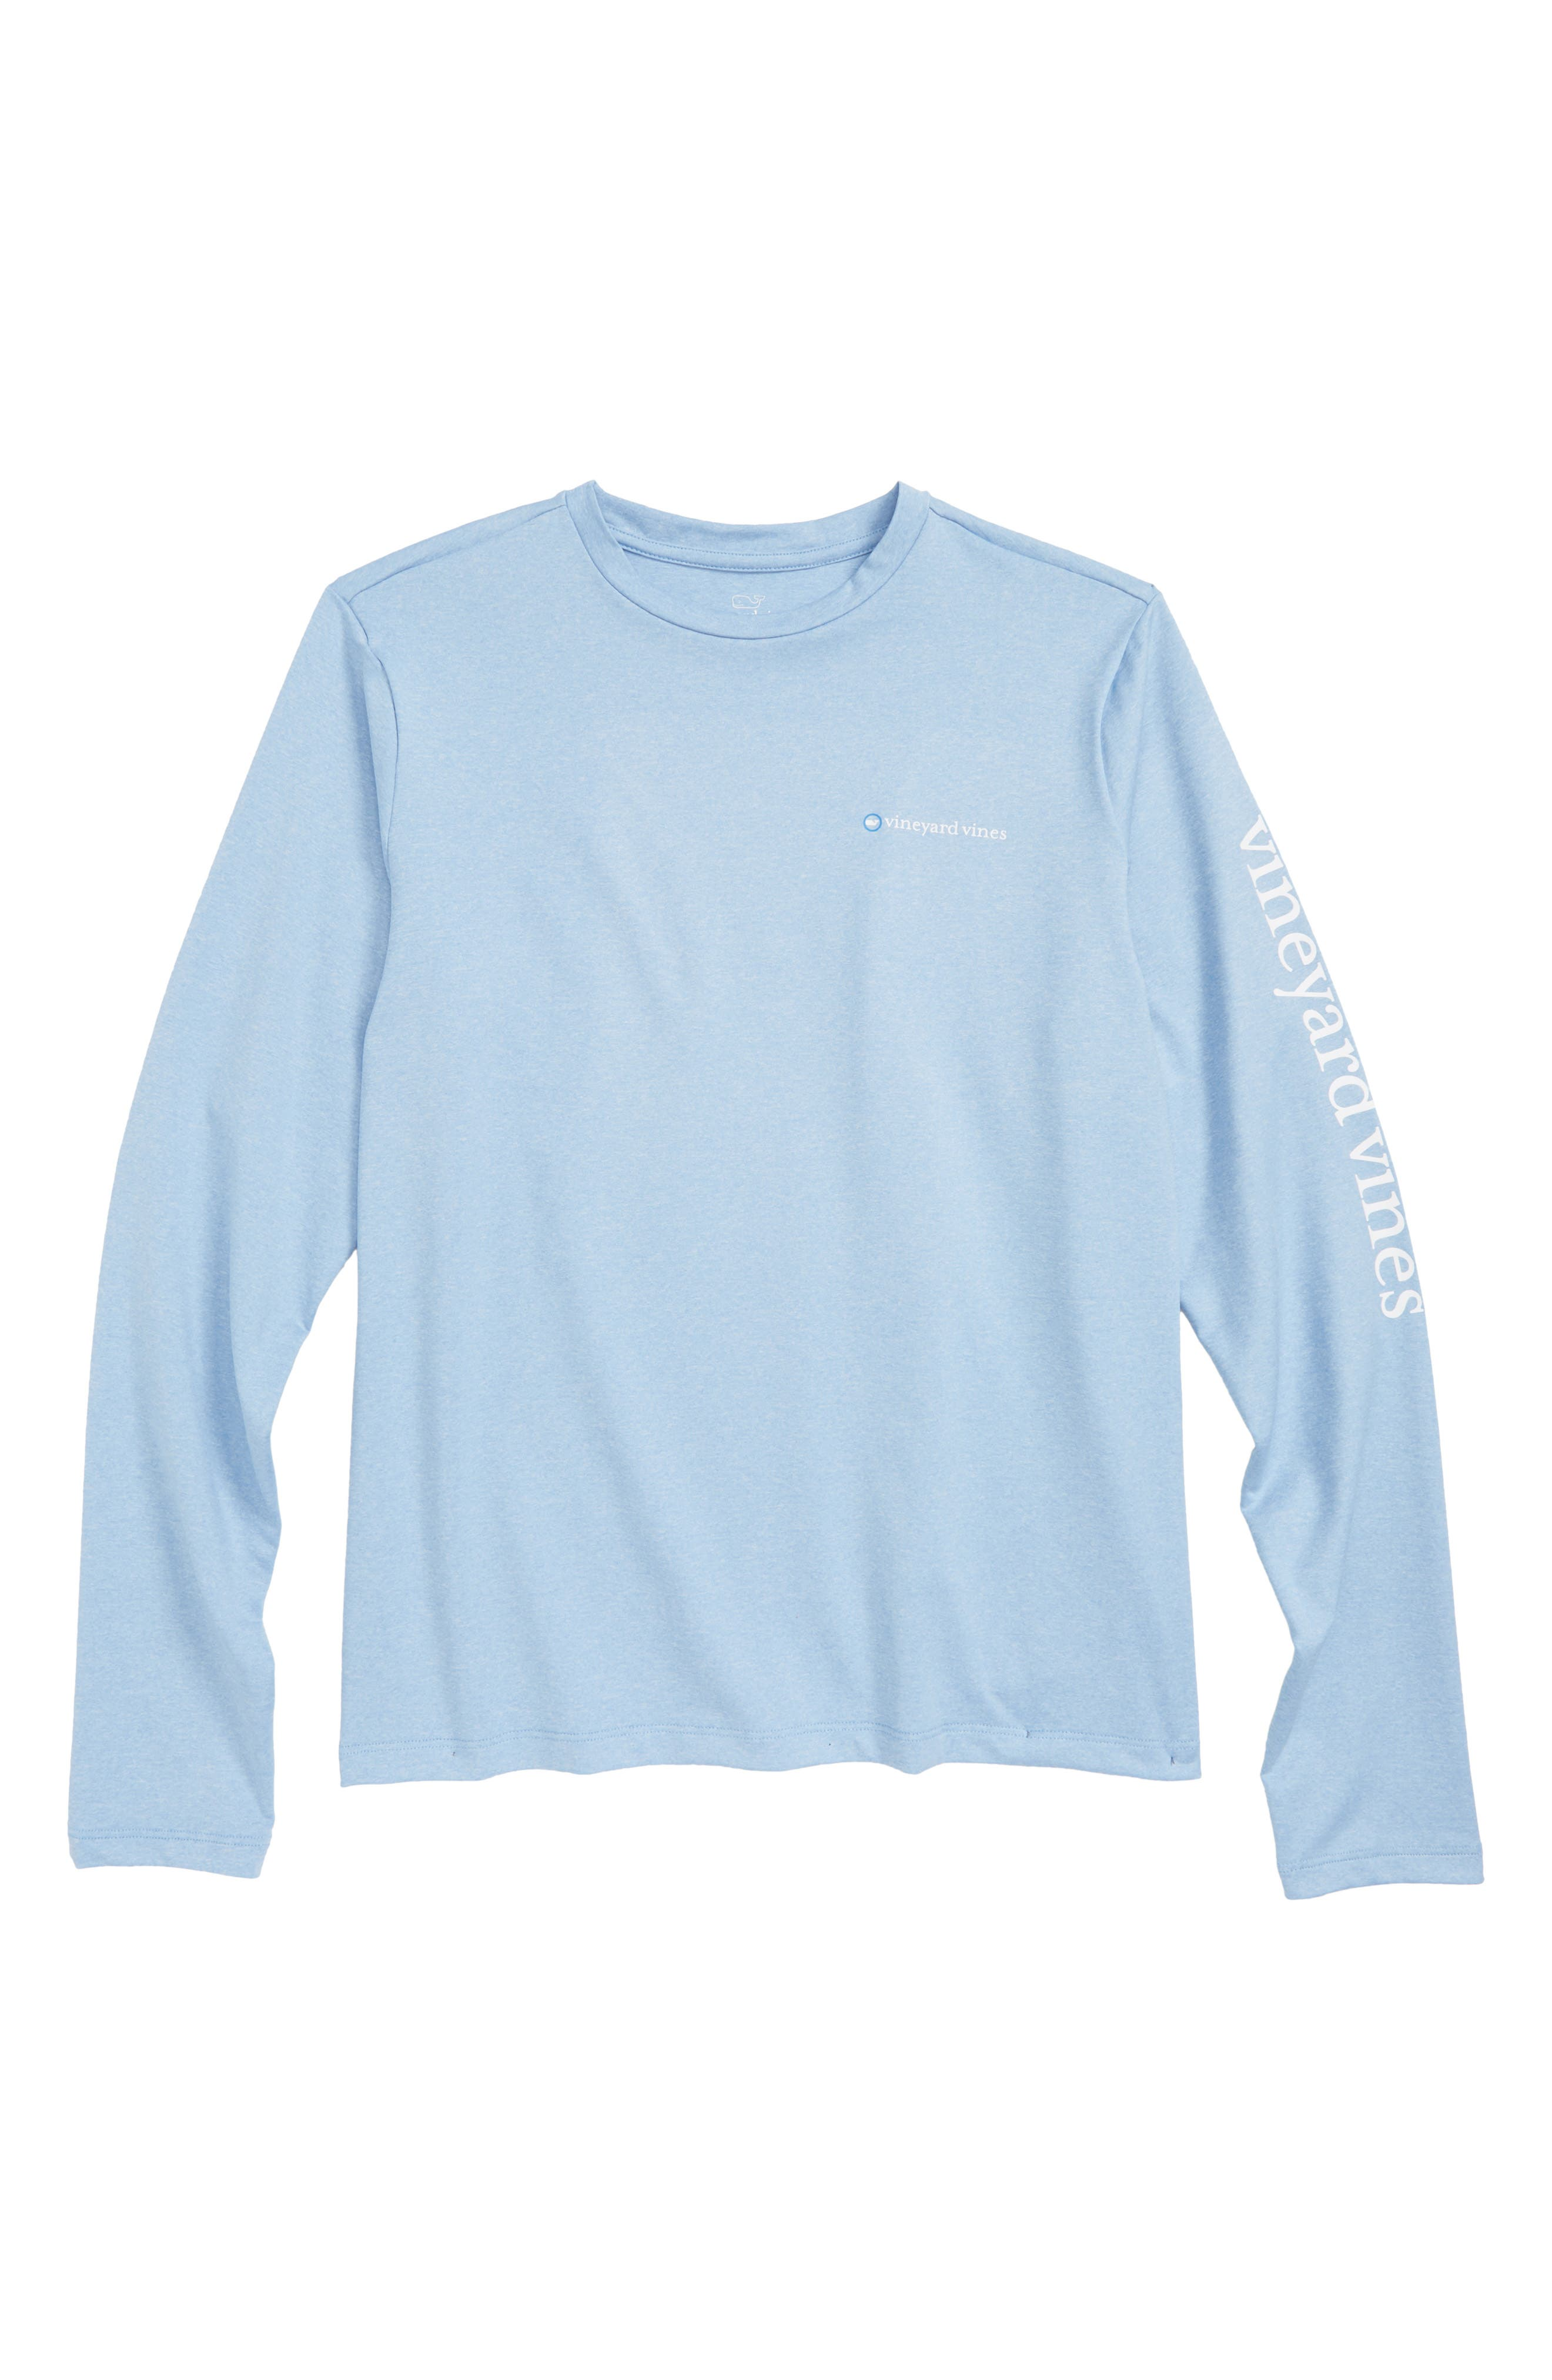 vineyard vines Performance Sport T-Shirt (Big Boys)